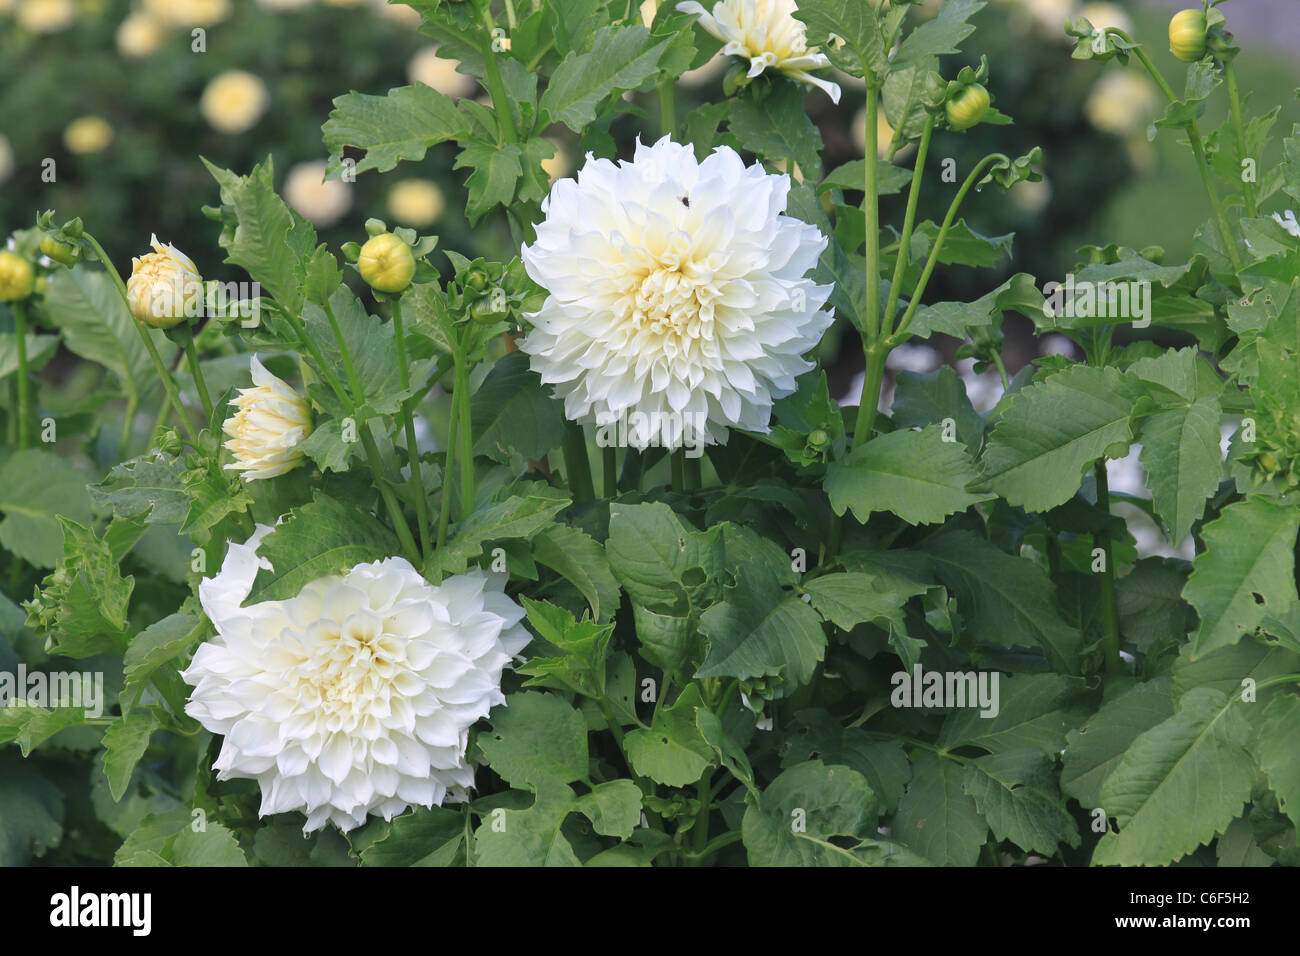 Greenery and white dahlias Stock Photo